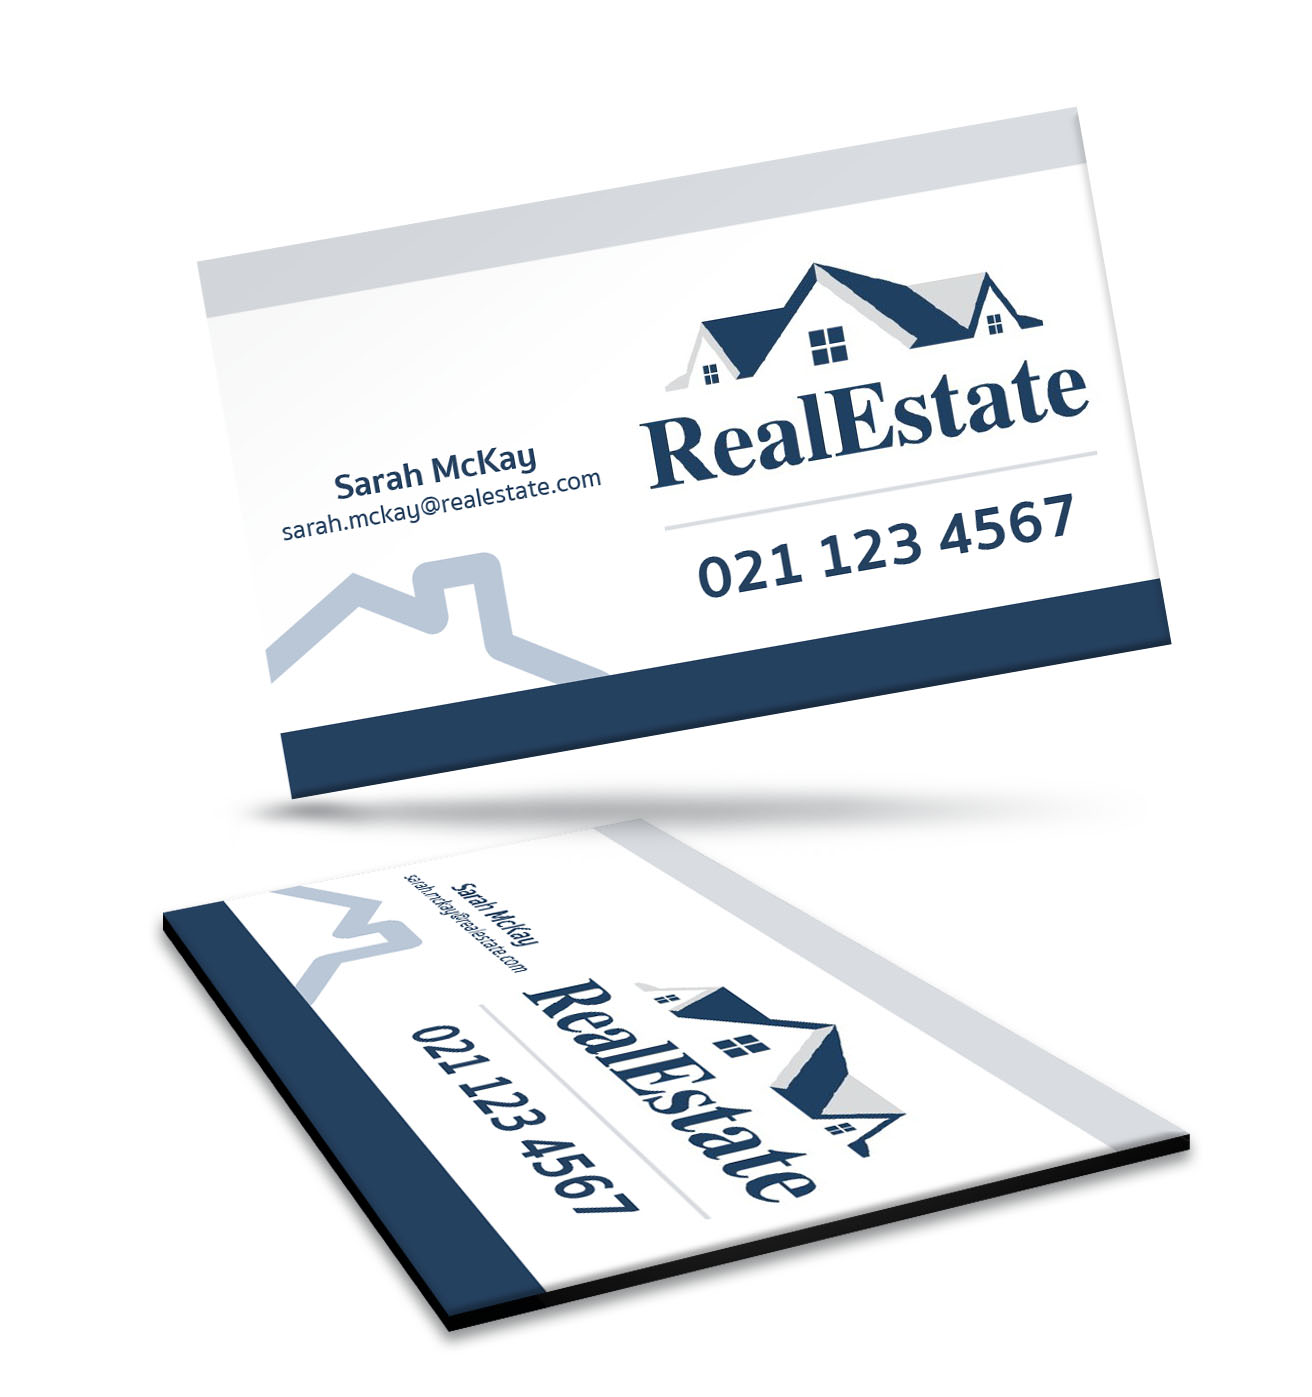 90 X 55mm Fridge Magnet Business Card